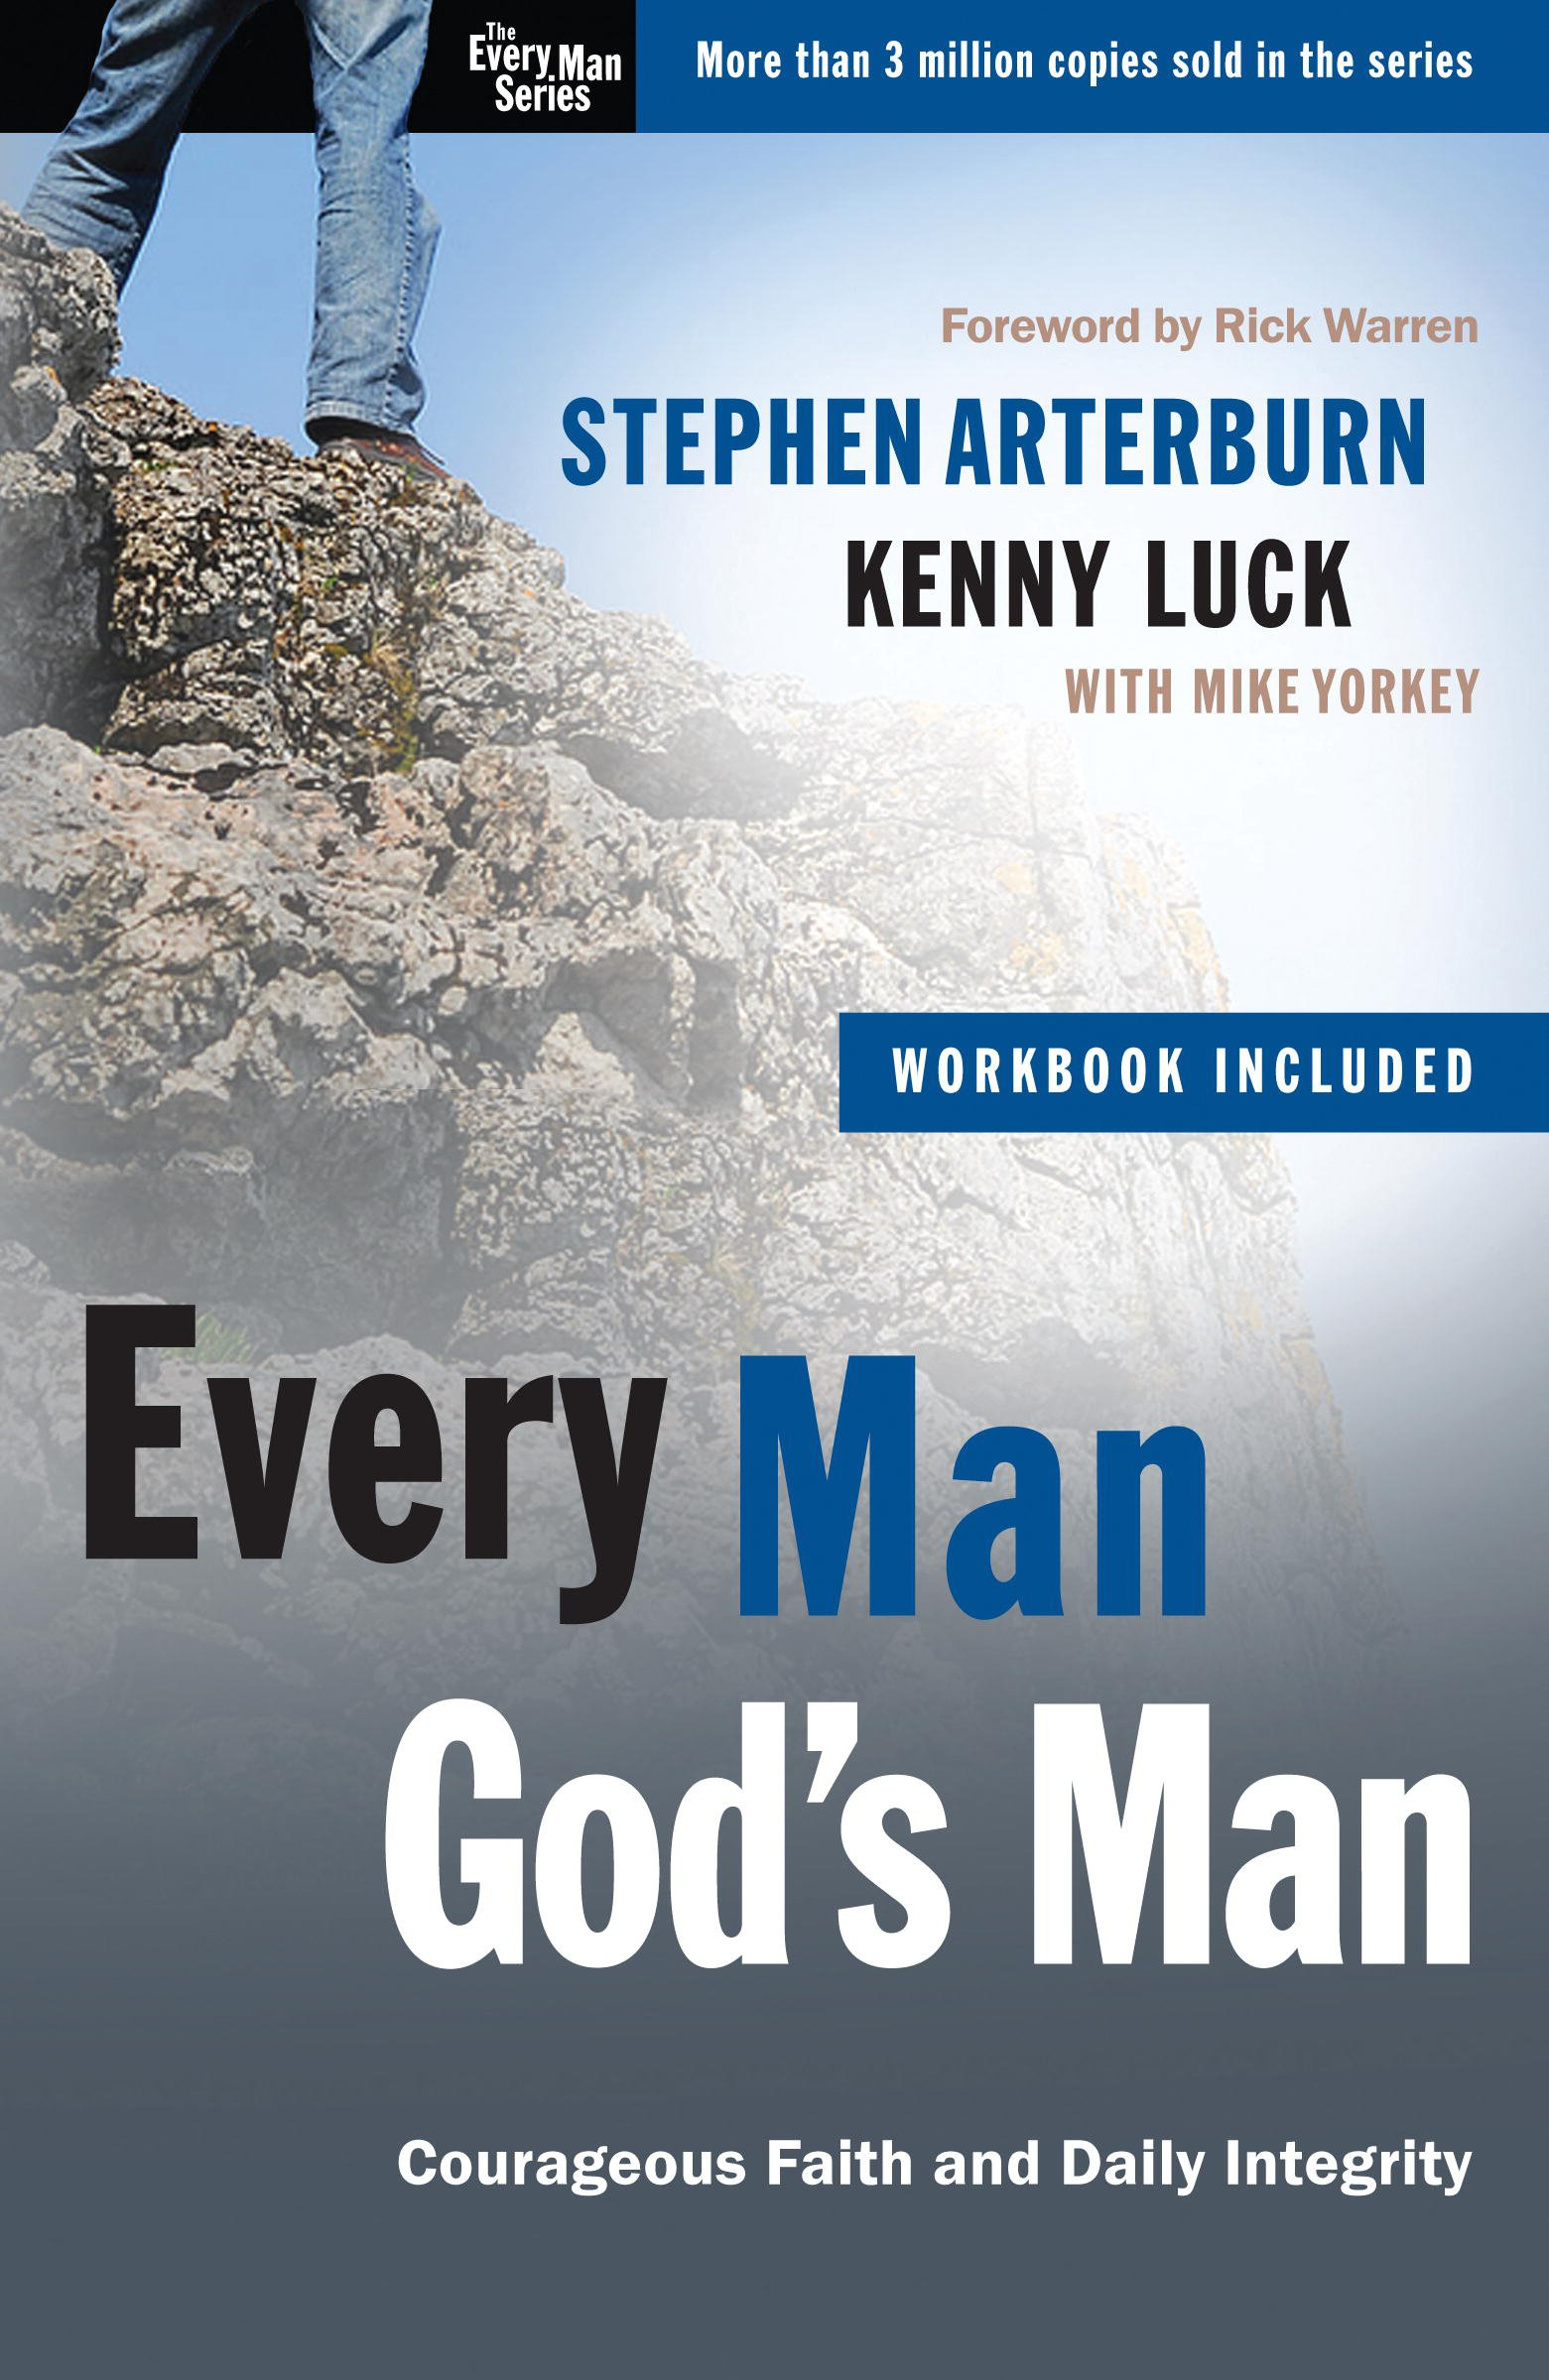 Download Every Man, God's Man: Courageous Faith and Daily Integrity (Christian Large Print Originals) pdf epub